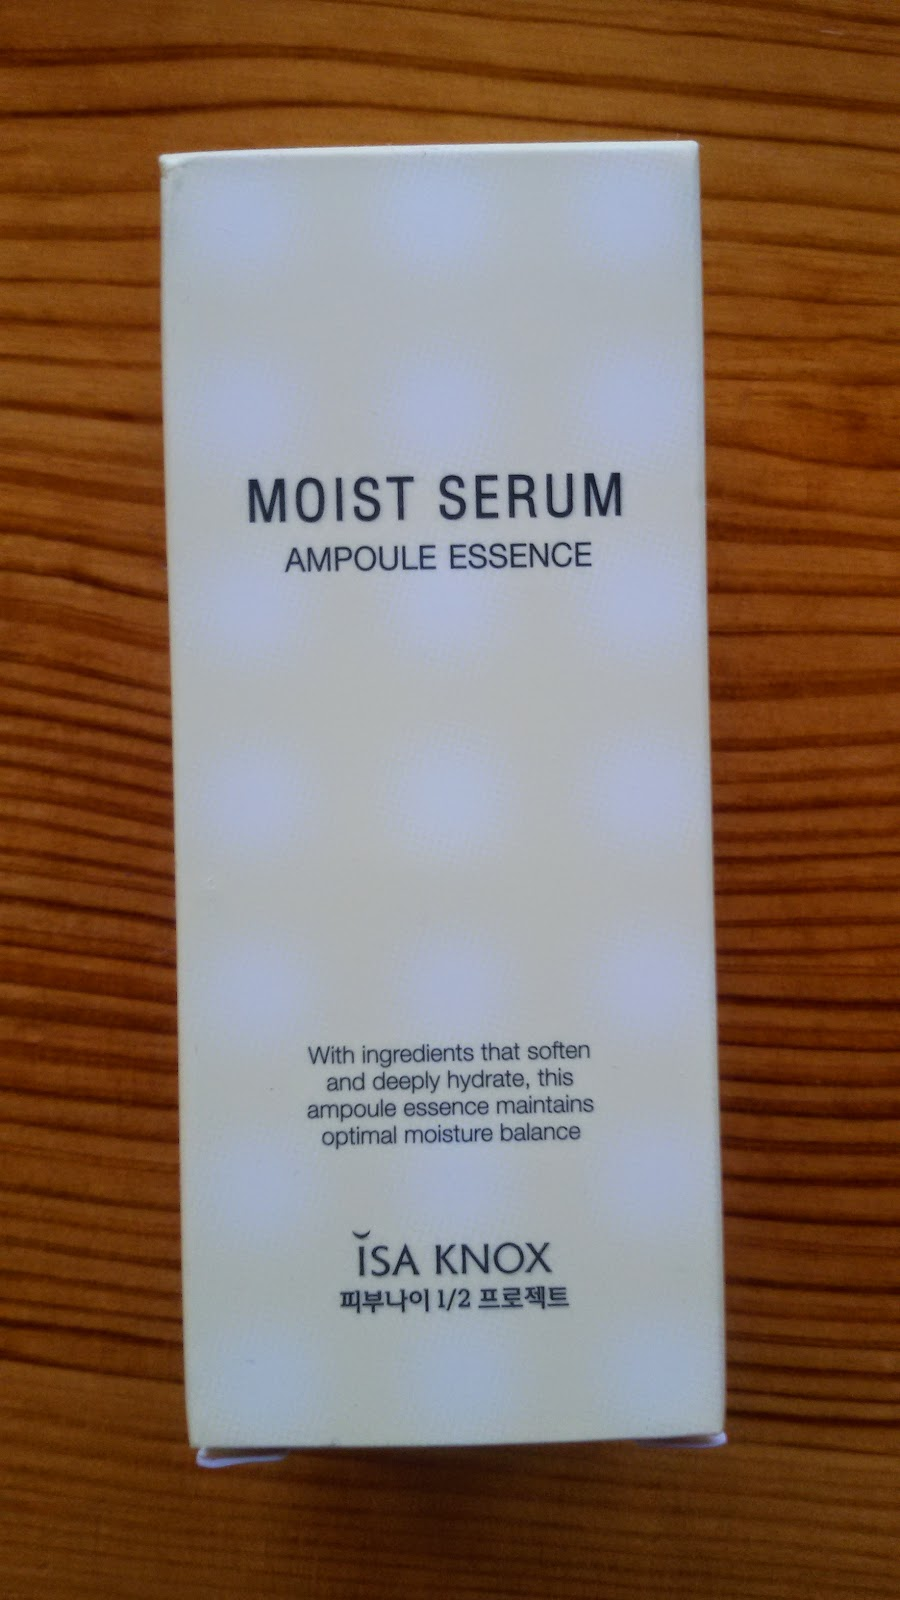 Isa Knox Moist Serum Ampoule Essence